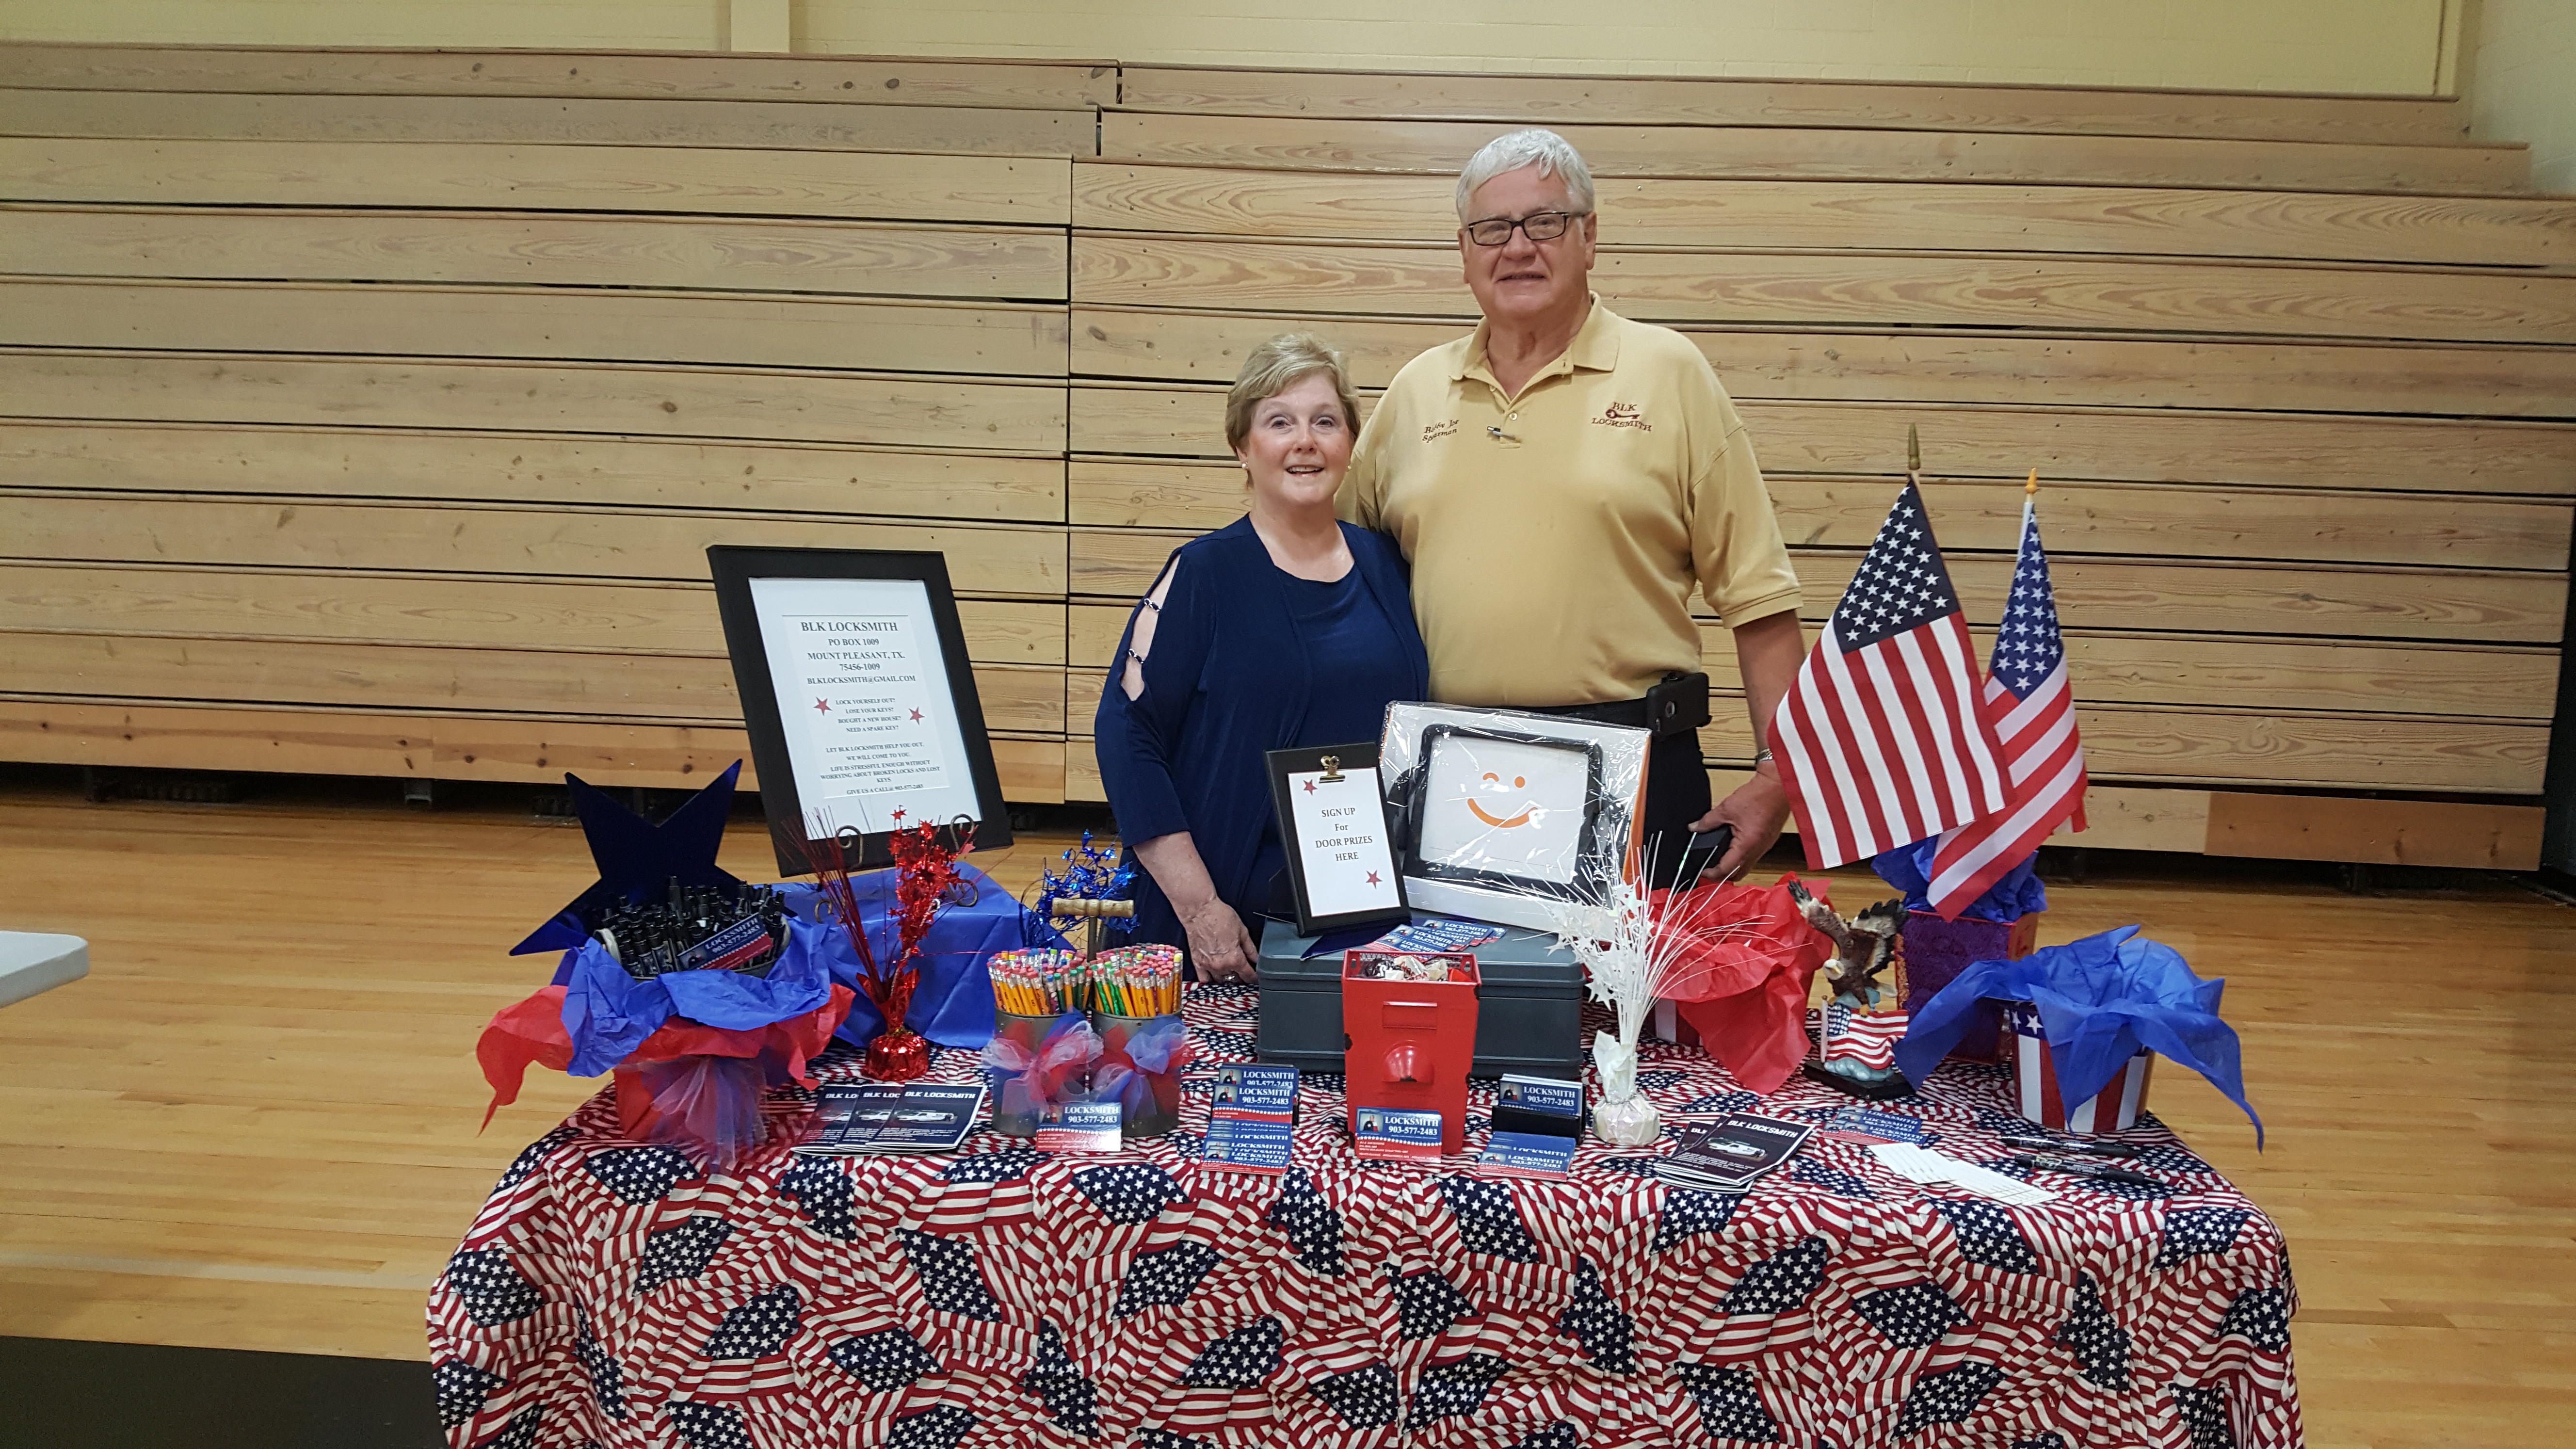 BOBBY JOE & MARY SPEARMAN PARTICIPATING IN LOCAL WELCOME BACK TEACHERS